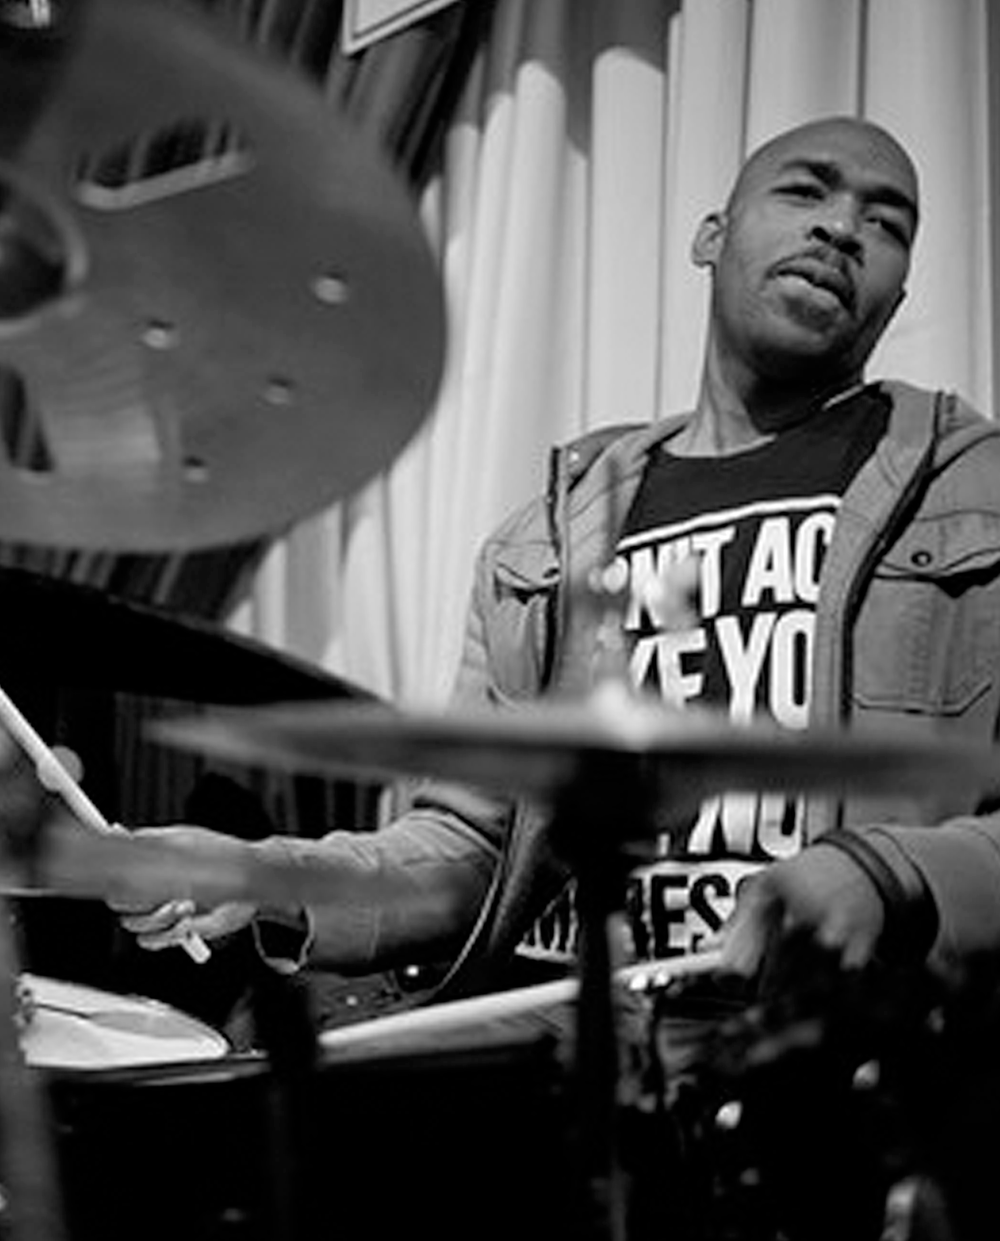 Eric Harland  Multi-Grammy nominated drummer, Eric Harland, has established himself as one of the premier jazz musicians of our time. He's collaborated with artists including John Mayer, Mariah Carey, Kevin Eubanks and Dispatch on over 300 recordings.  Eric's extensive resume includes founding his own production company, Eland Productions, and mentoring as an Artistic Director at SFJazz. He has been recognized in publications like The New York Times, The New Yorker and The Boston Globe.   Eric was born in Houston, Texas and is a graduate of the Manhattan School of Music.